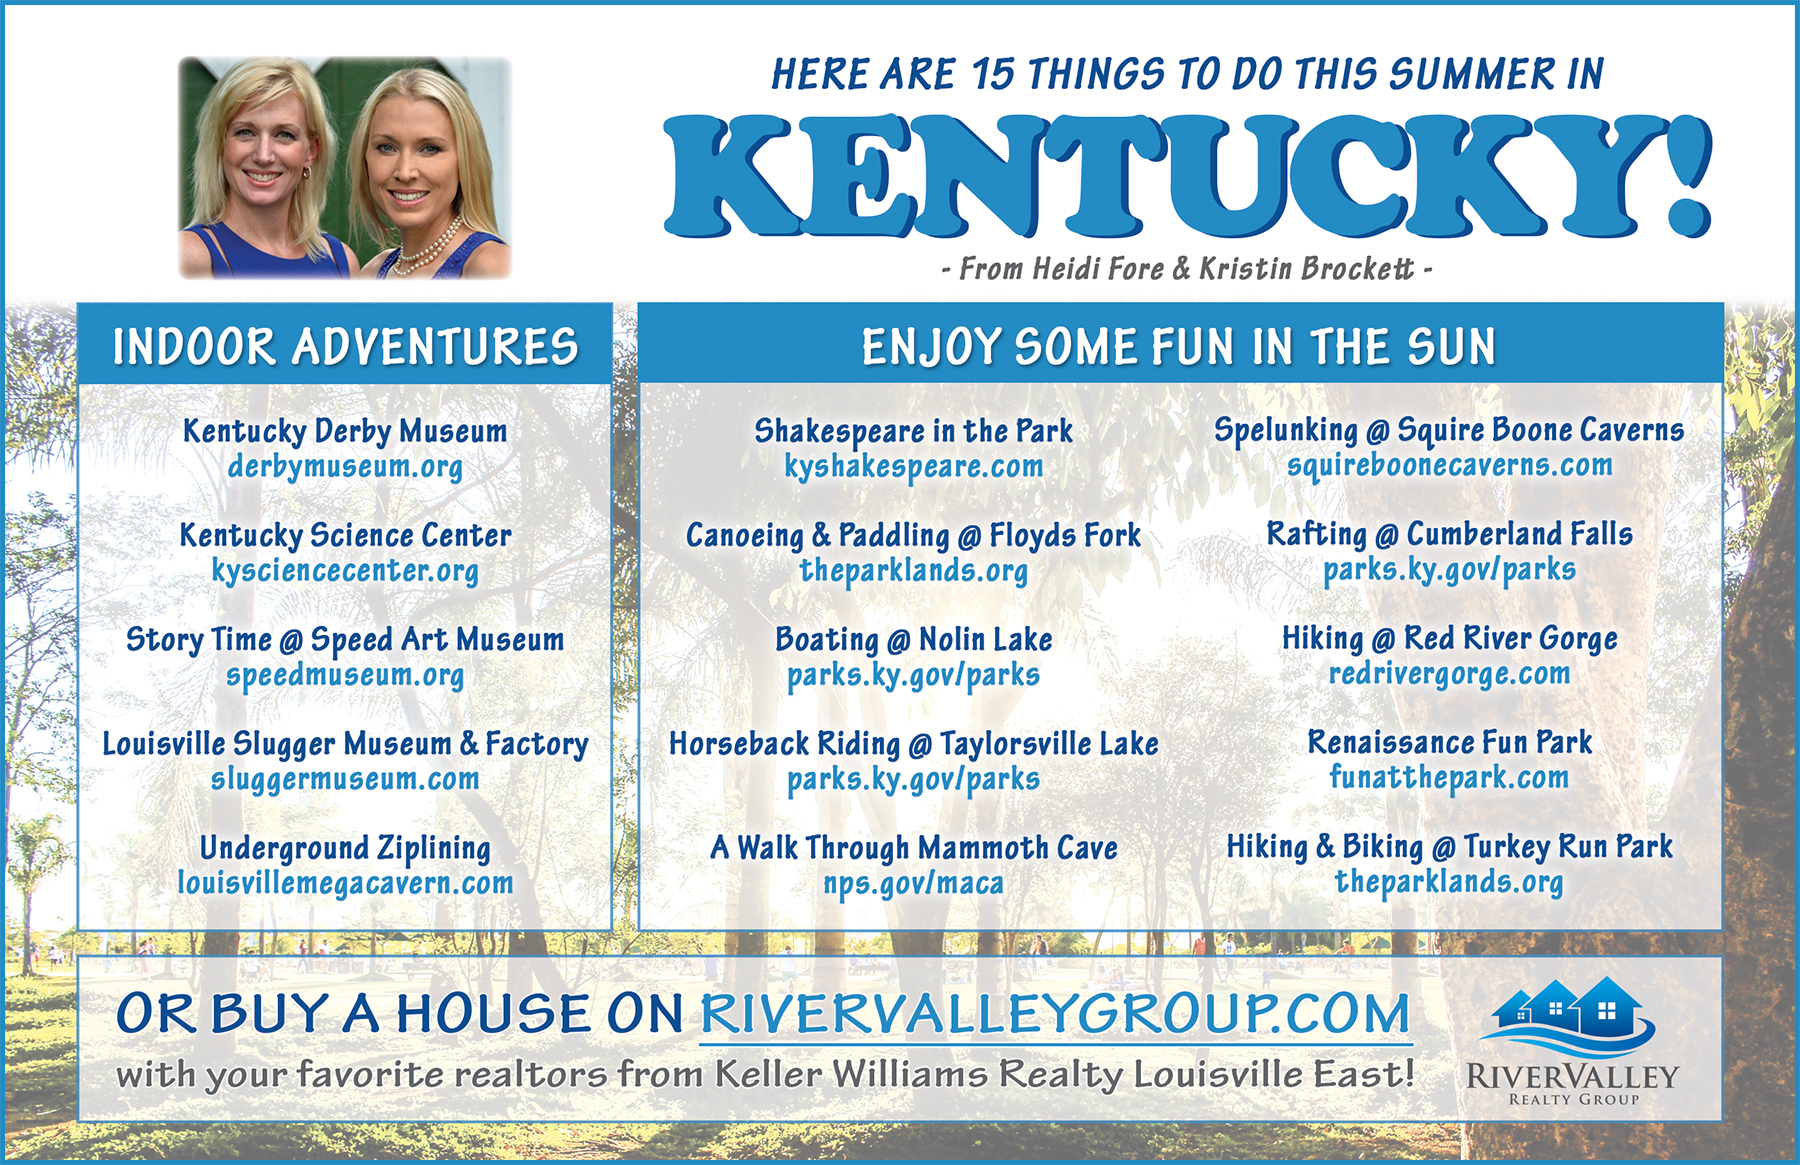 Things To Do In Kentucky This Summer!